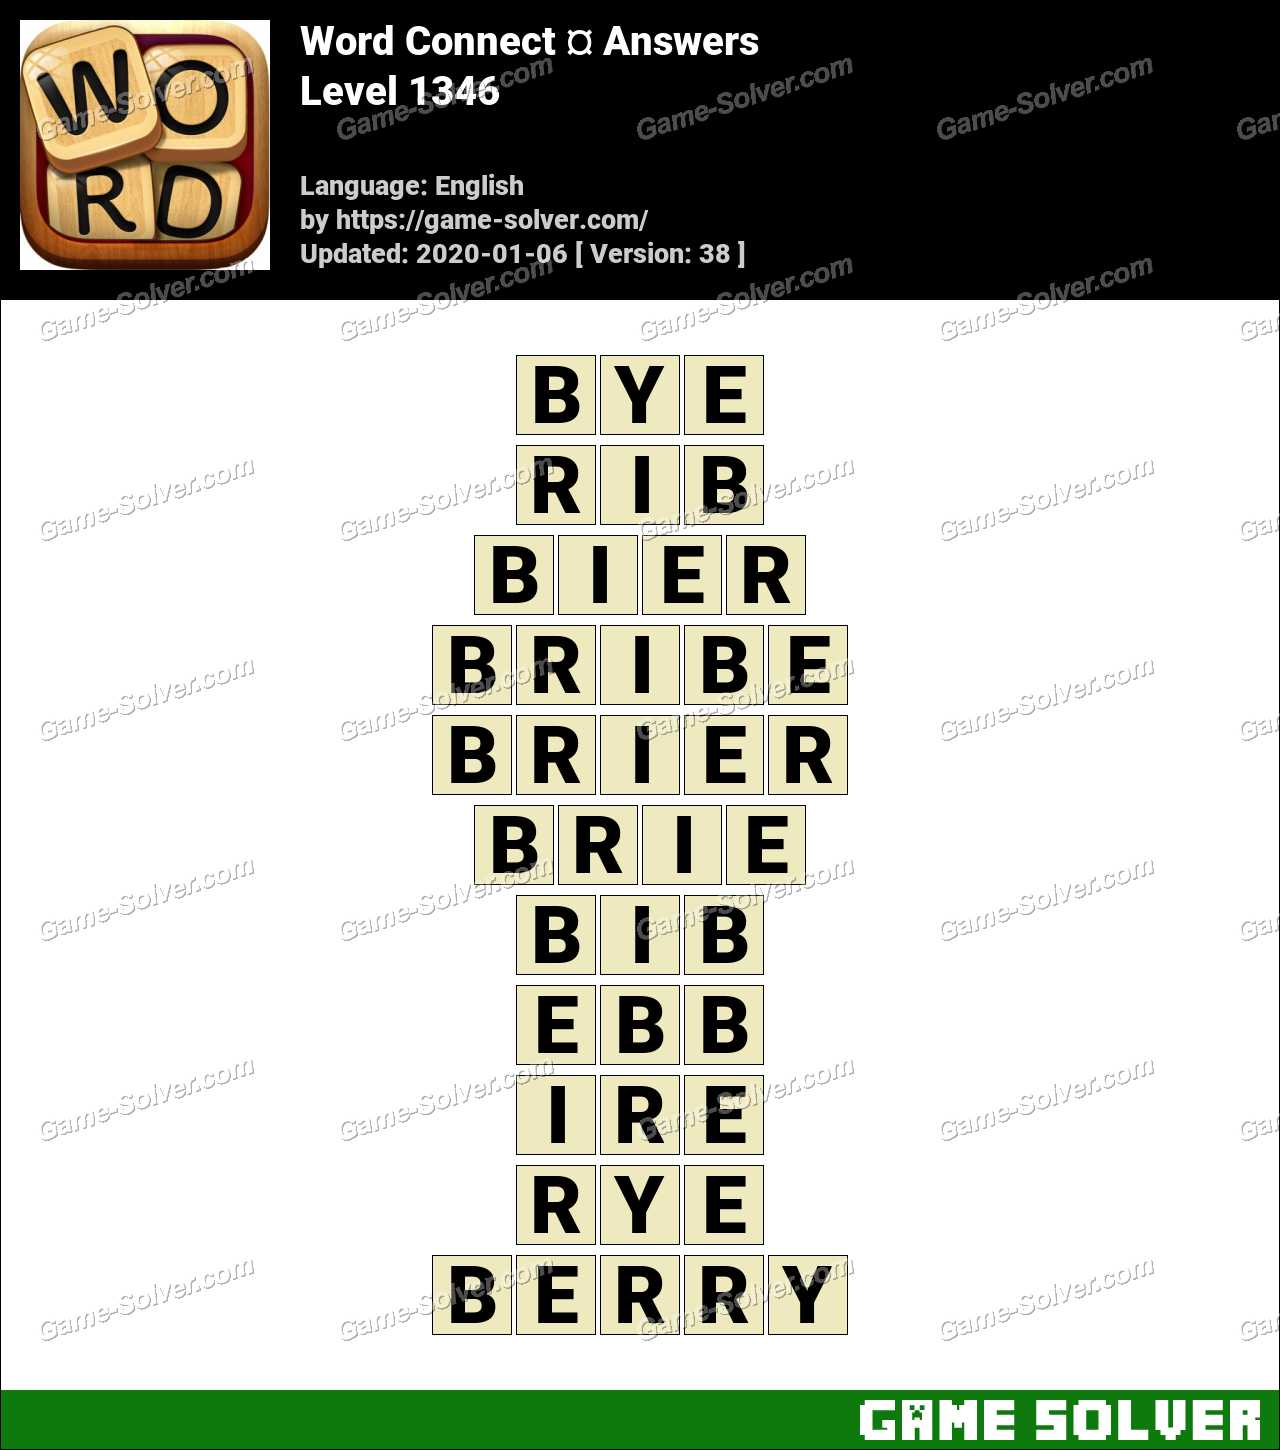 Word Connect Level 1346 Answers